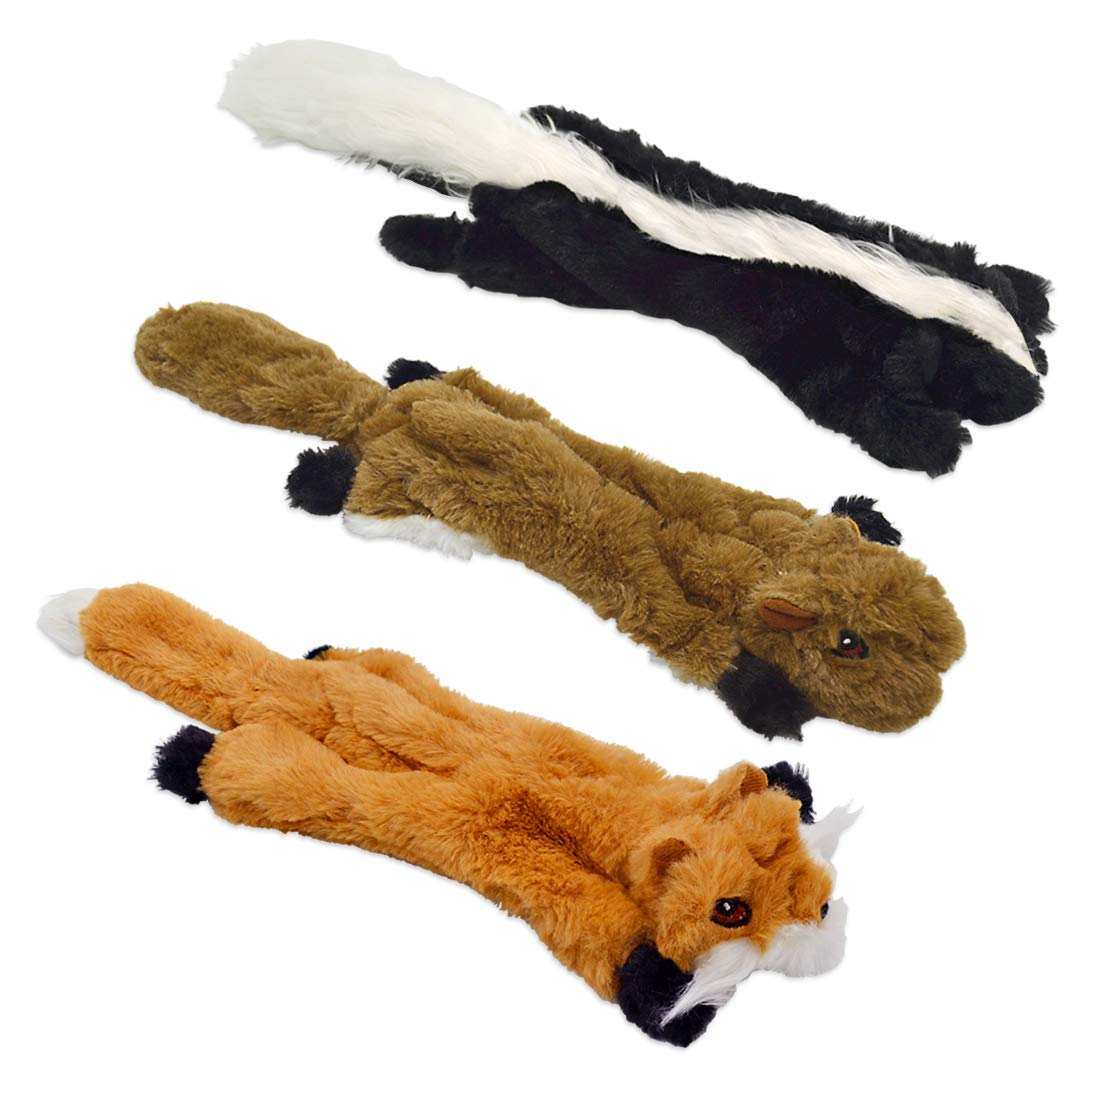 UOLIWO No Stuffing Dog Toys with Squeakers, Durable Stuffingless Dog Chew Toy Set with Squirrel Skunk Fox Skinny Squeaky Plush Dog Toys for Small Medium and Large Dogs 3 Packs